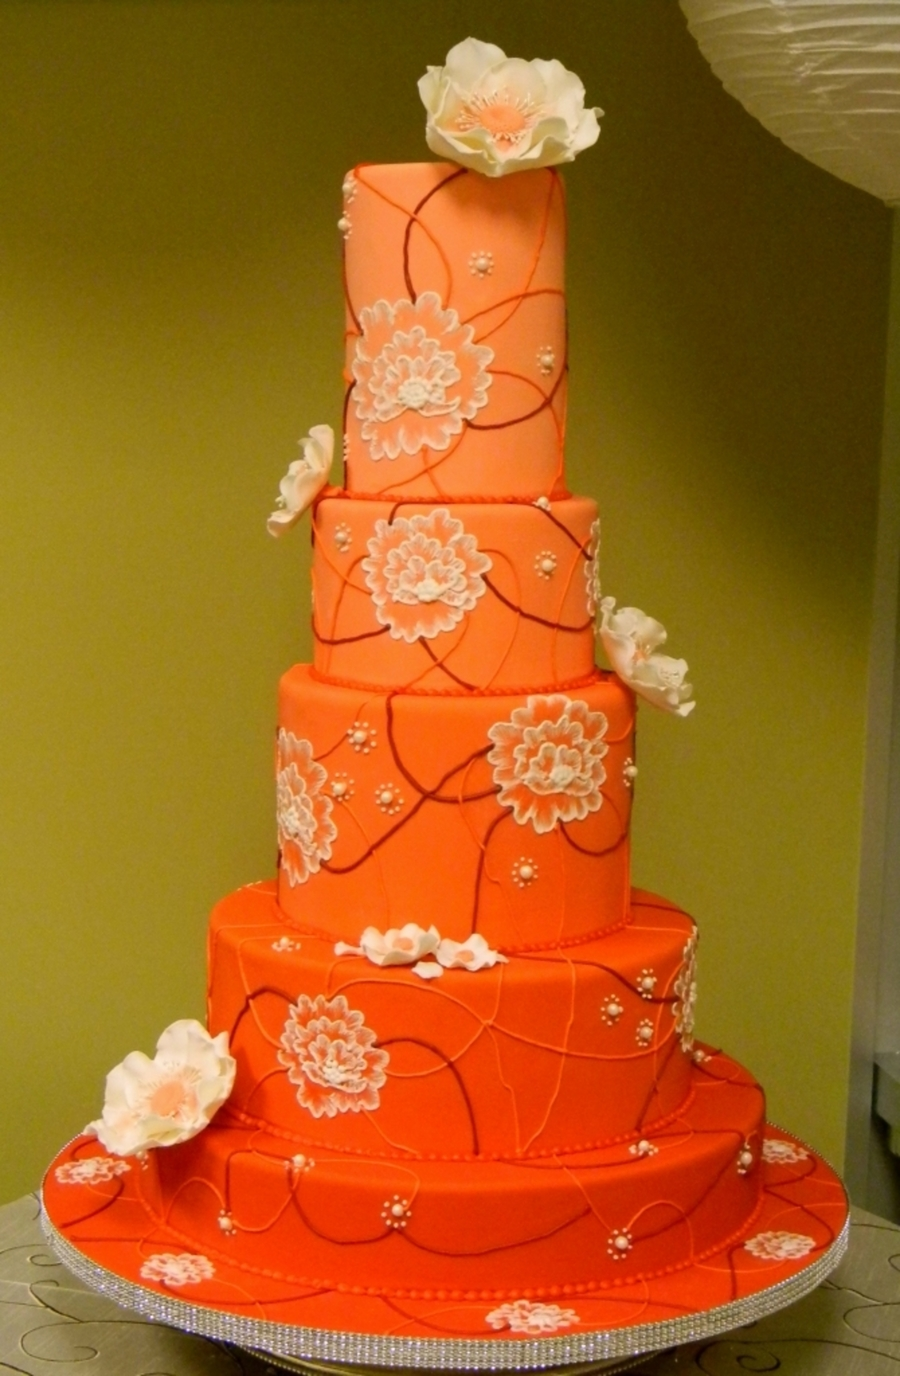 Tangerine Wedding Cake on Cake Central